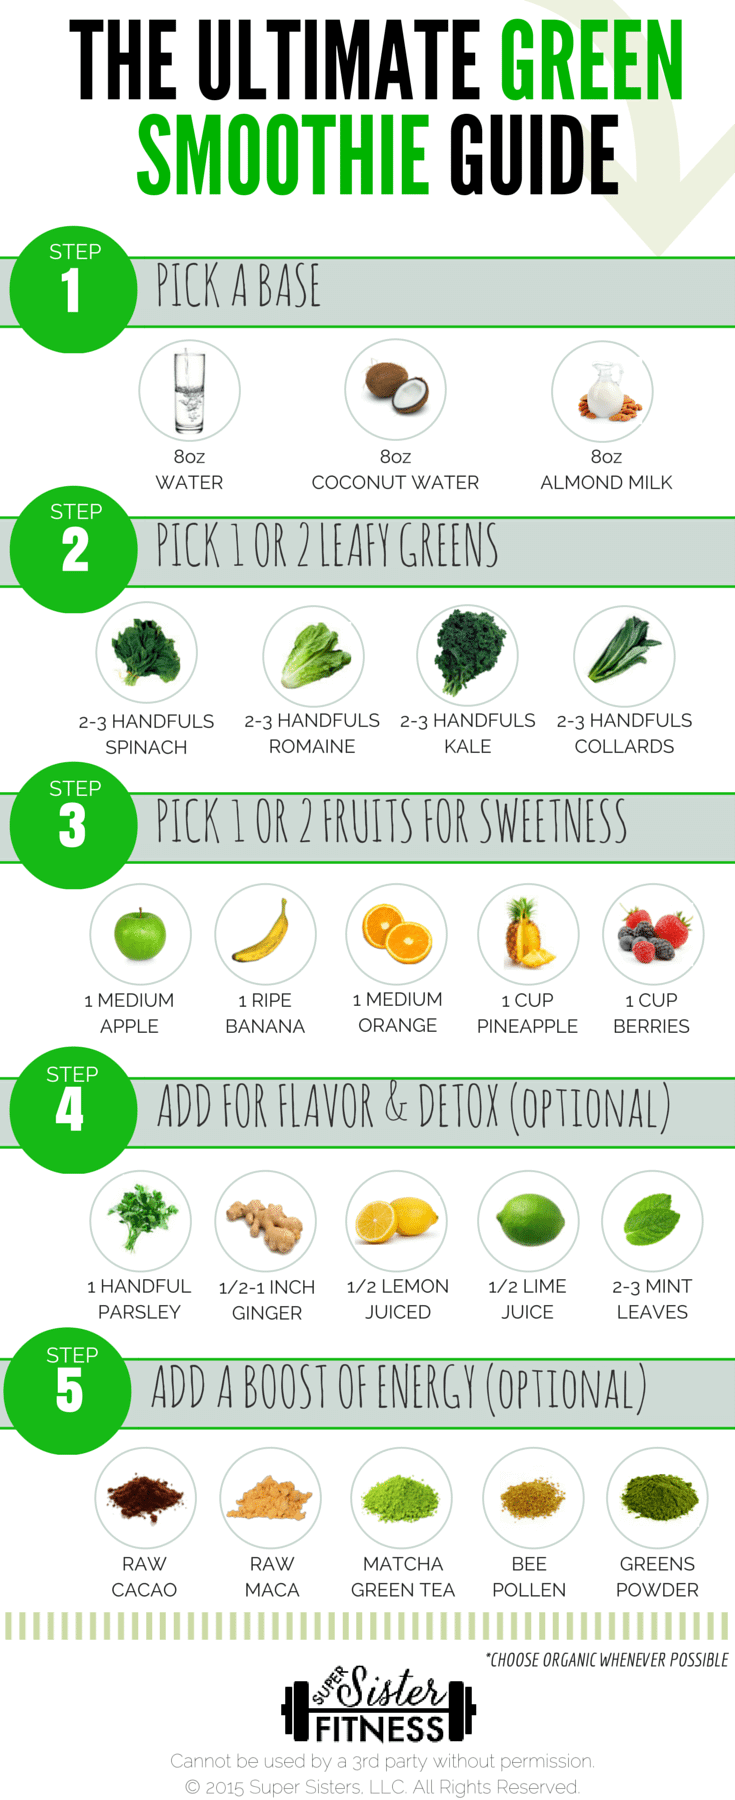 35 BEST Green Smoothie Recipes For Weight Loss | The ...